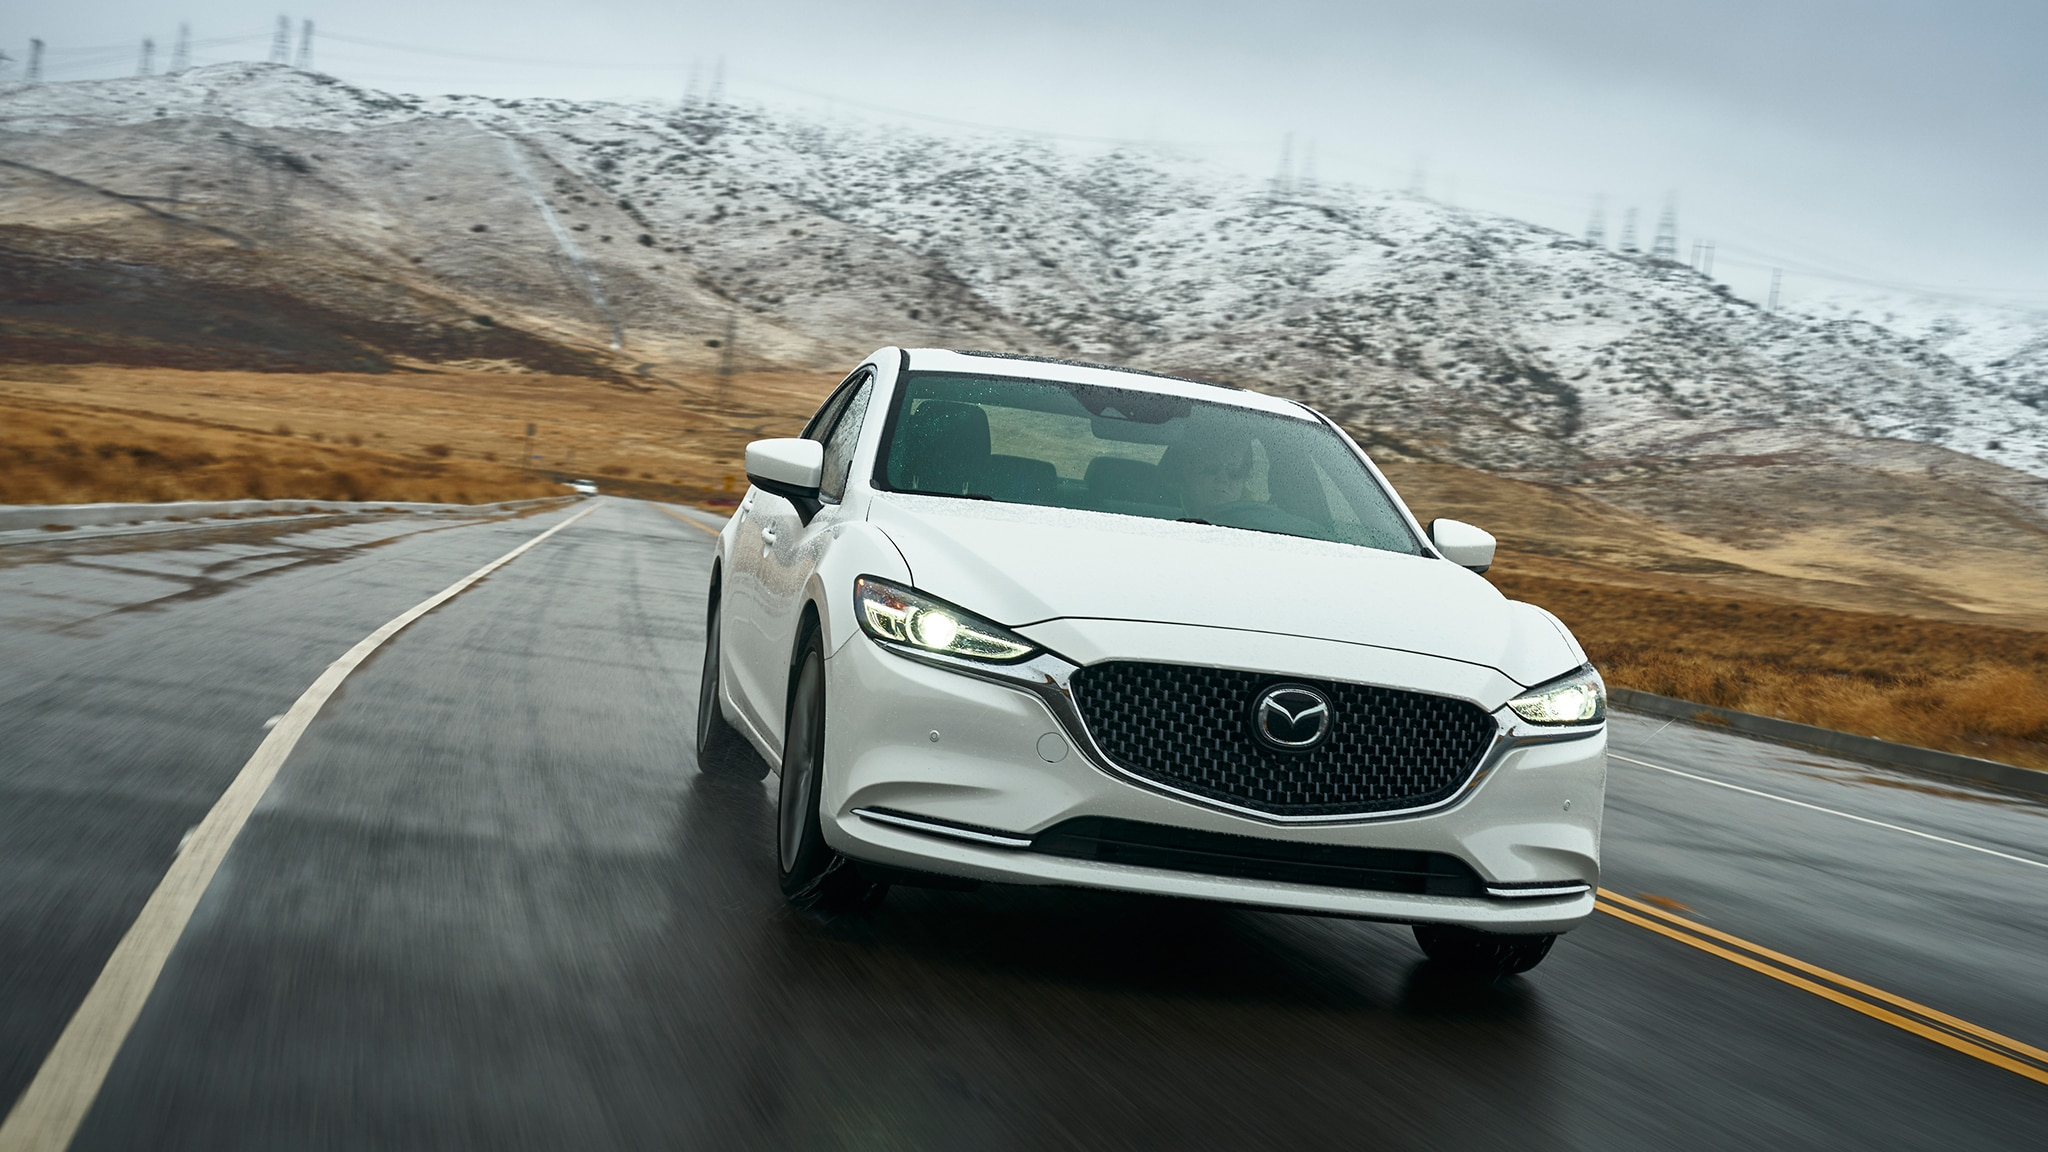 2019 Mazda 6 Turbo Signature: Power and Premiumness ...